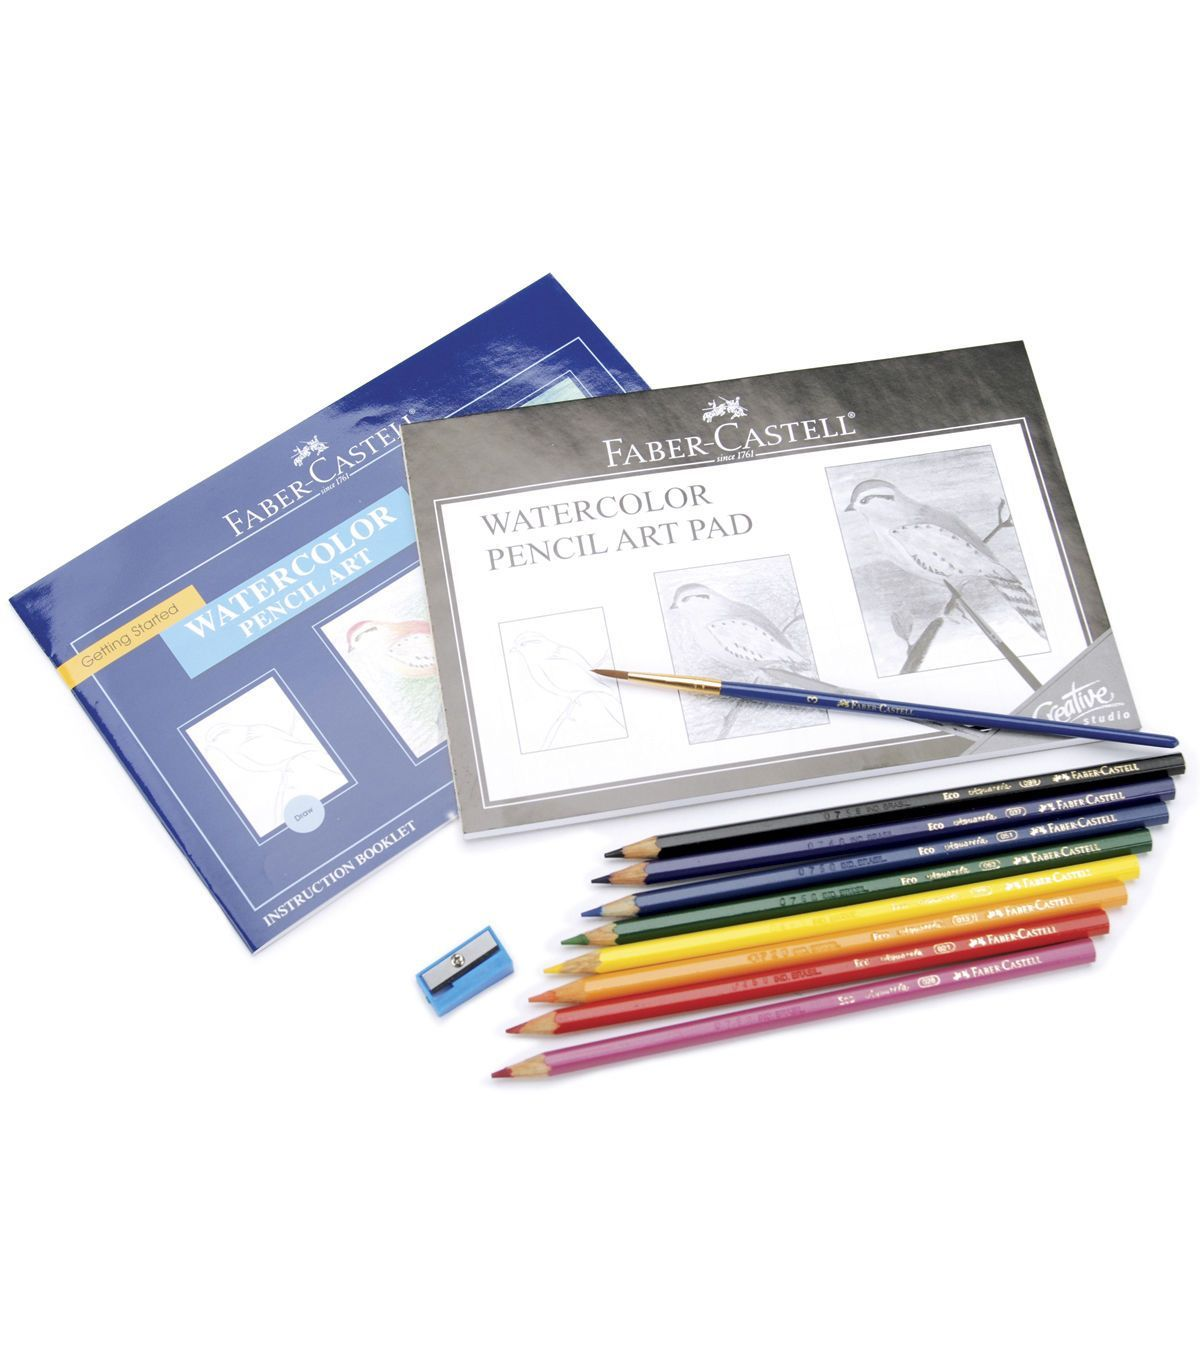 Creative Studio Getting Started Art Kit Watercolor Pencil